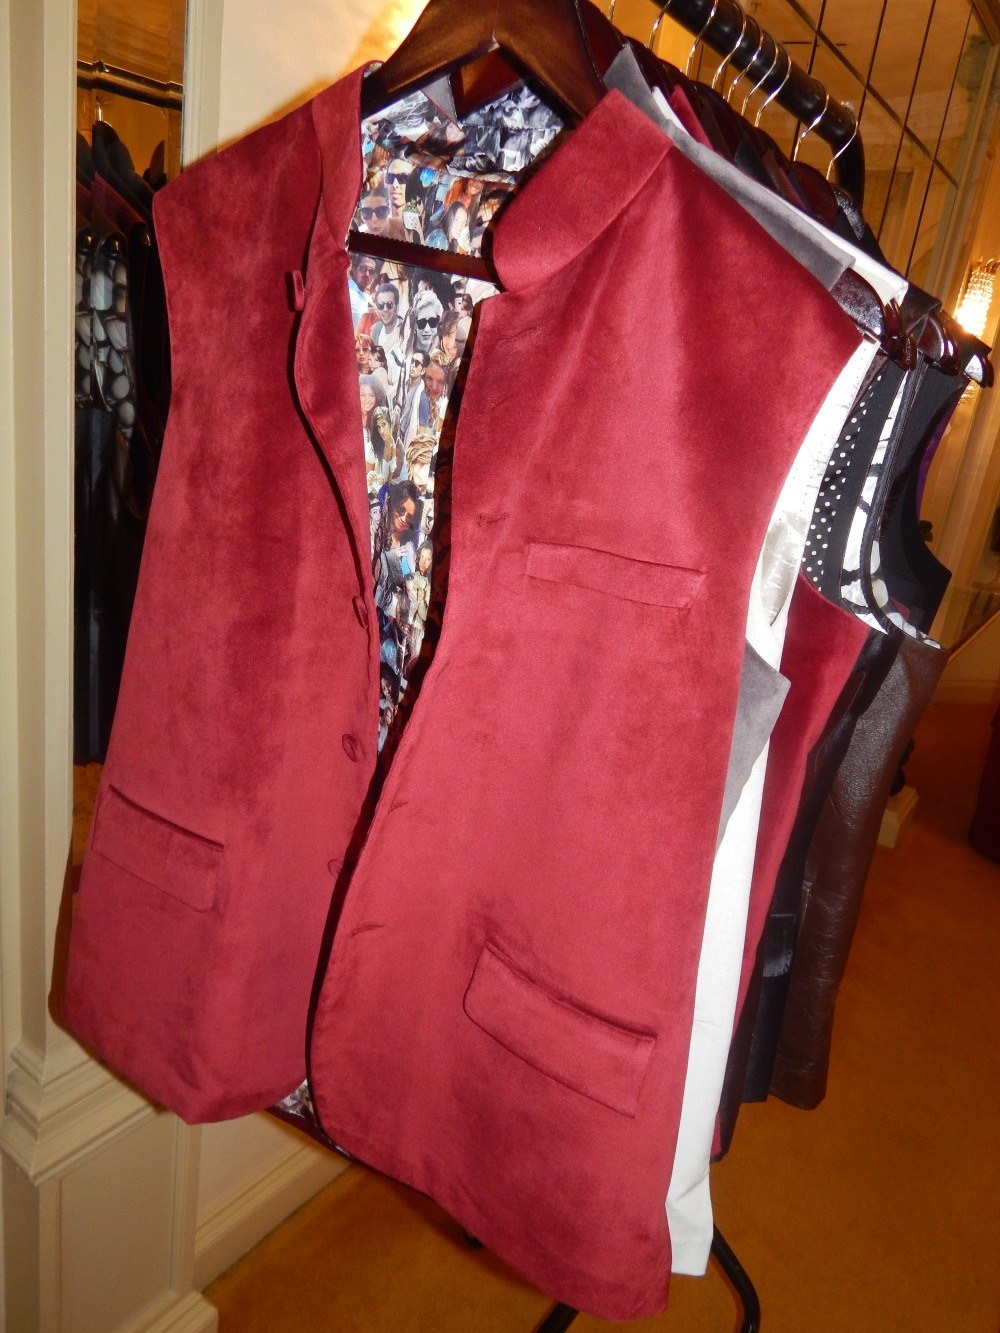 """The Quirky """"Facebook Profile"""" Sleeveless Nehru Jacket"""